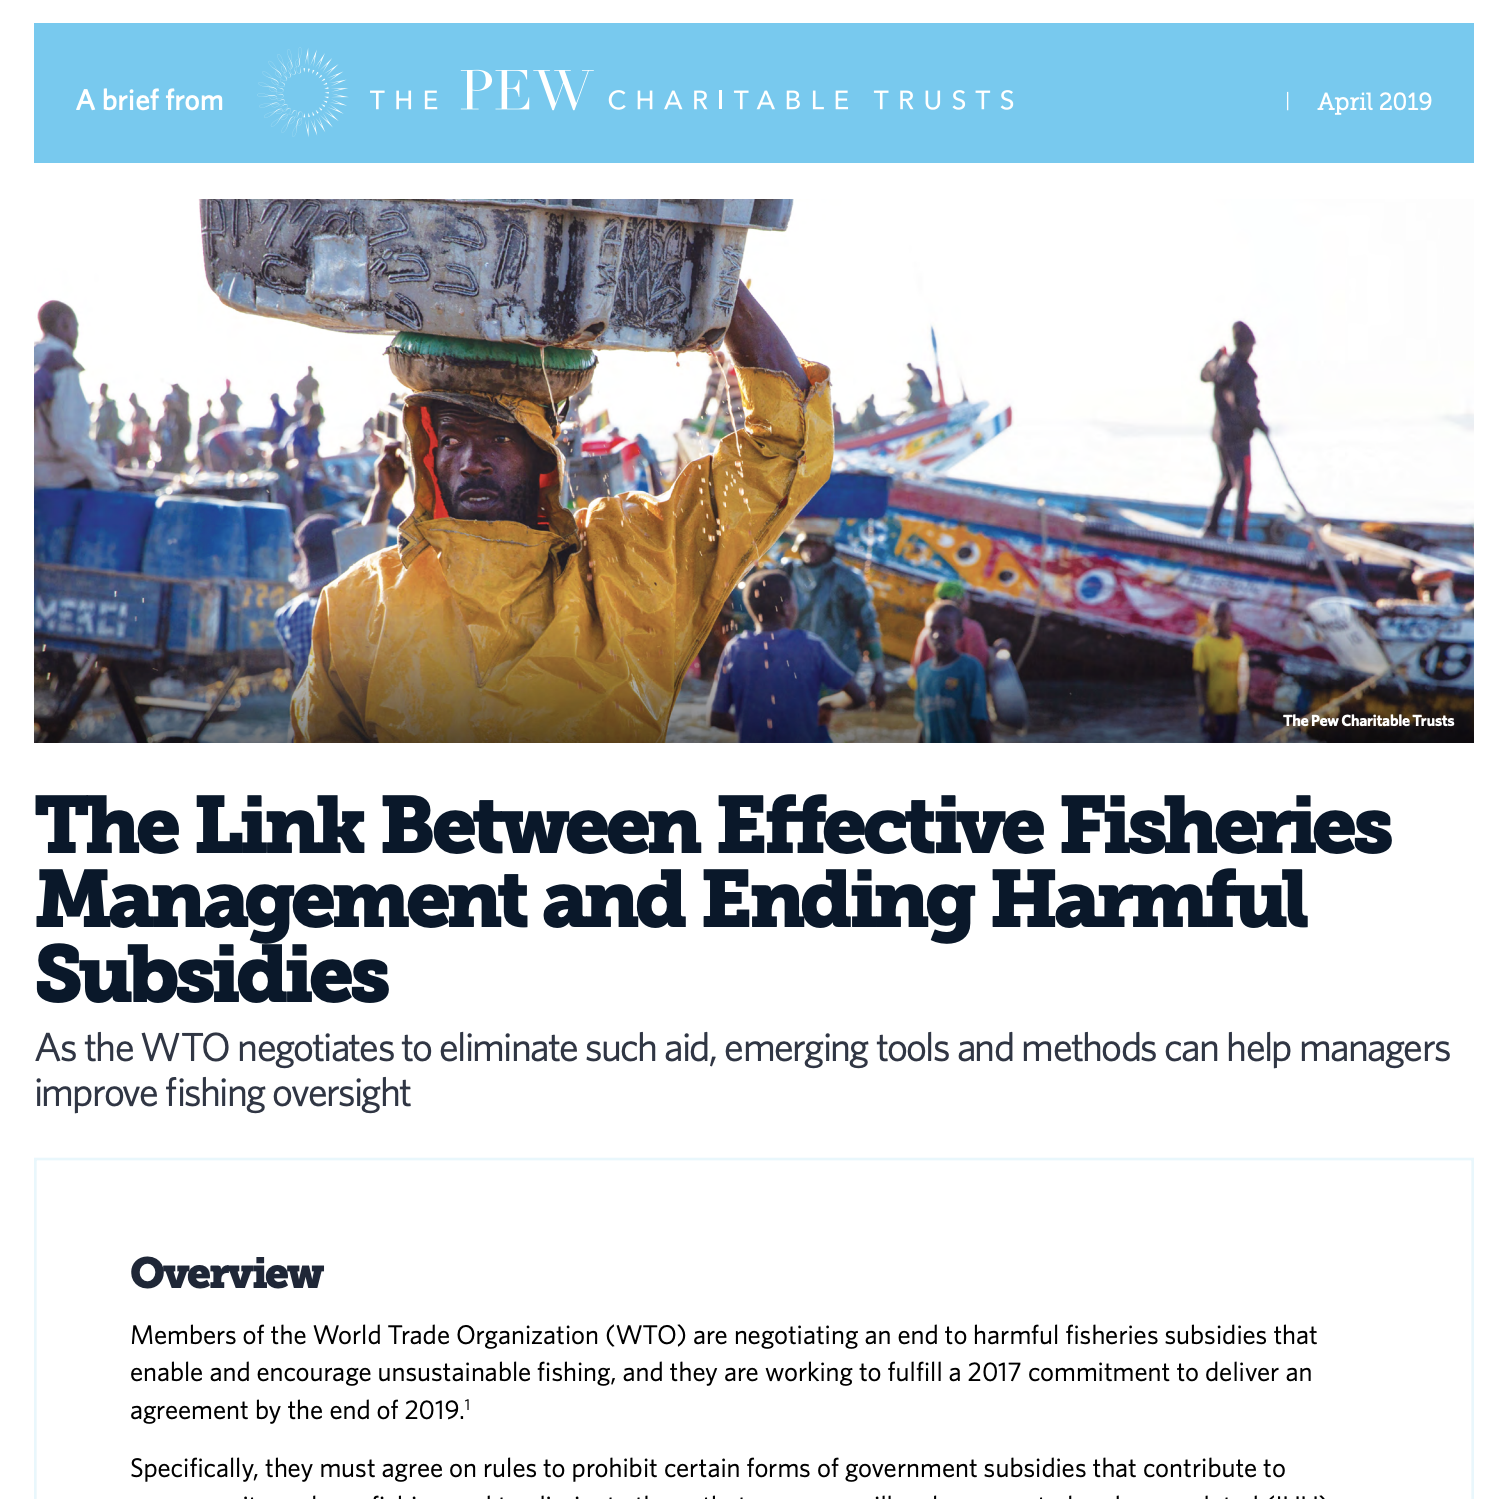 The Link Between Effective Fisheries Management and Ending Harmful Subsidies